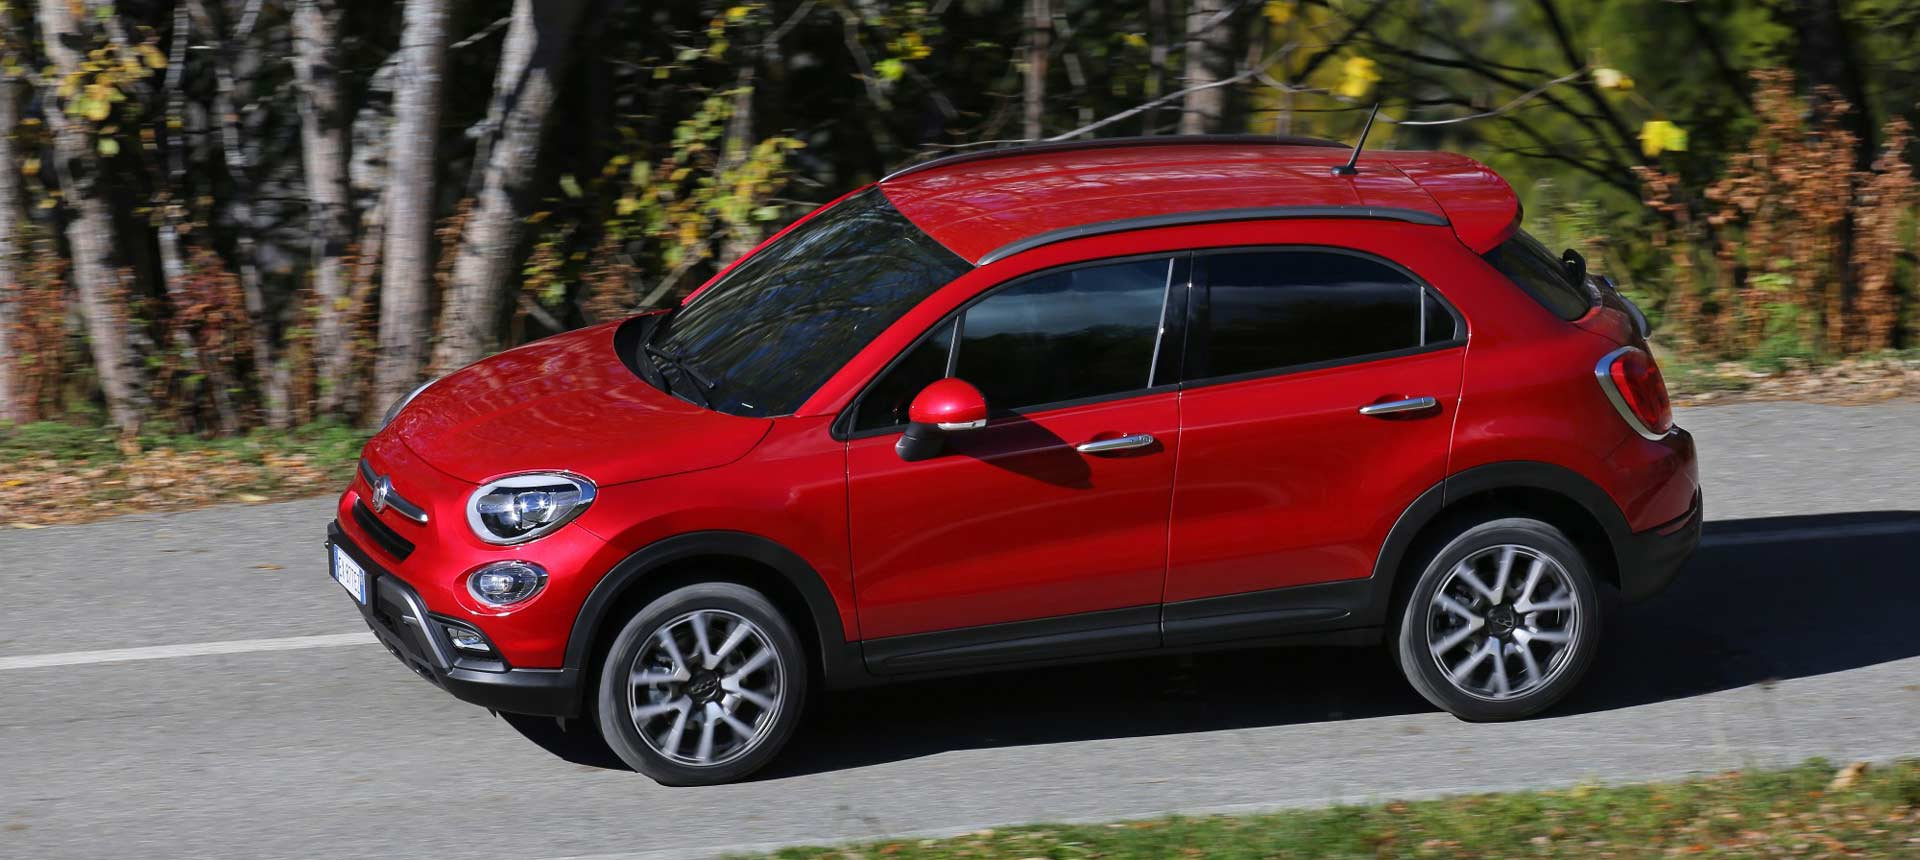 fiat 500x prezzi e allestimenti red live. Black Bedroom Furniture Sets. Home Design Ideas